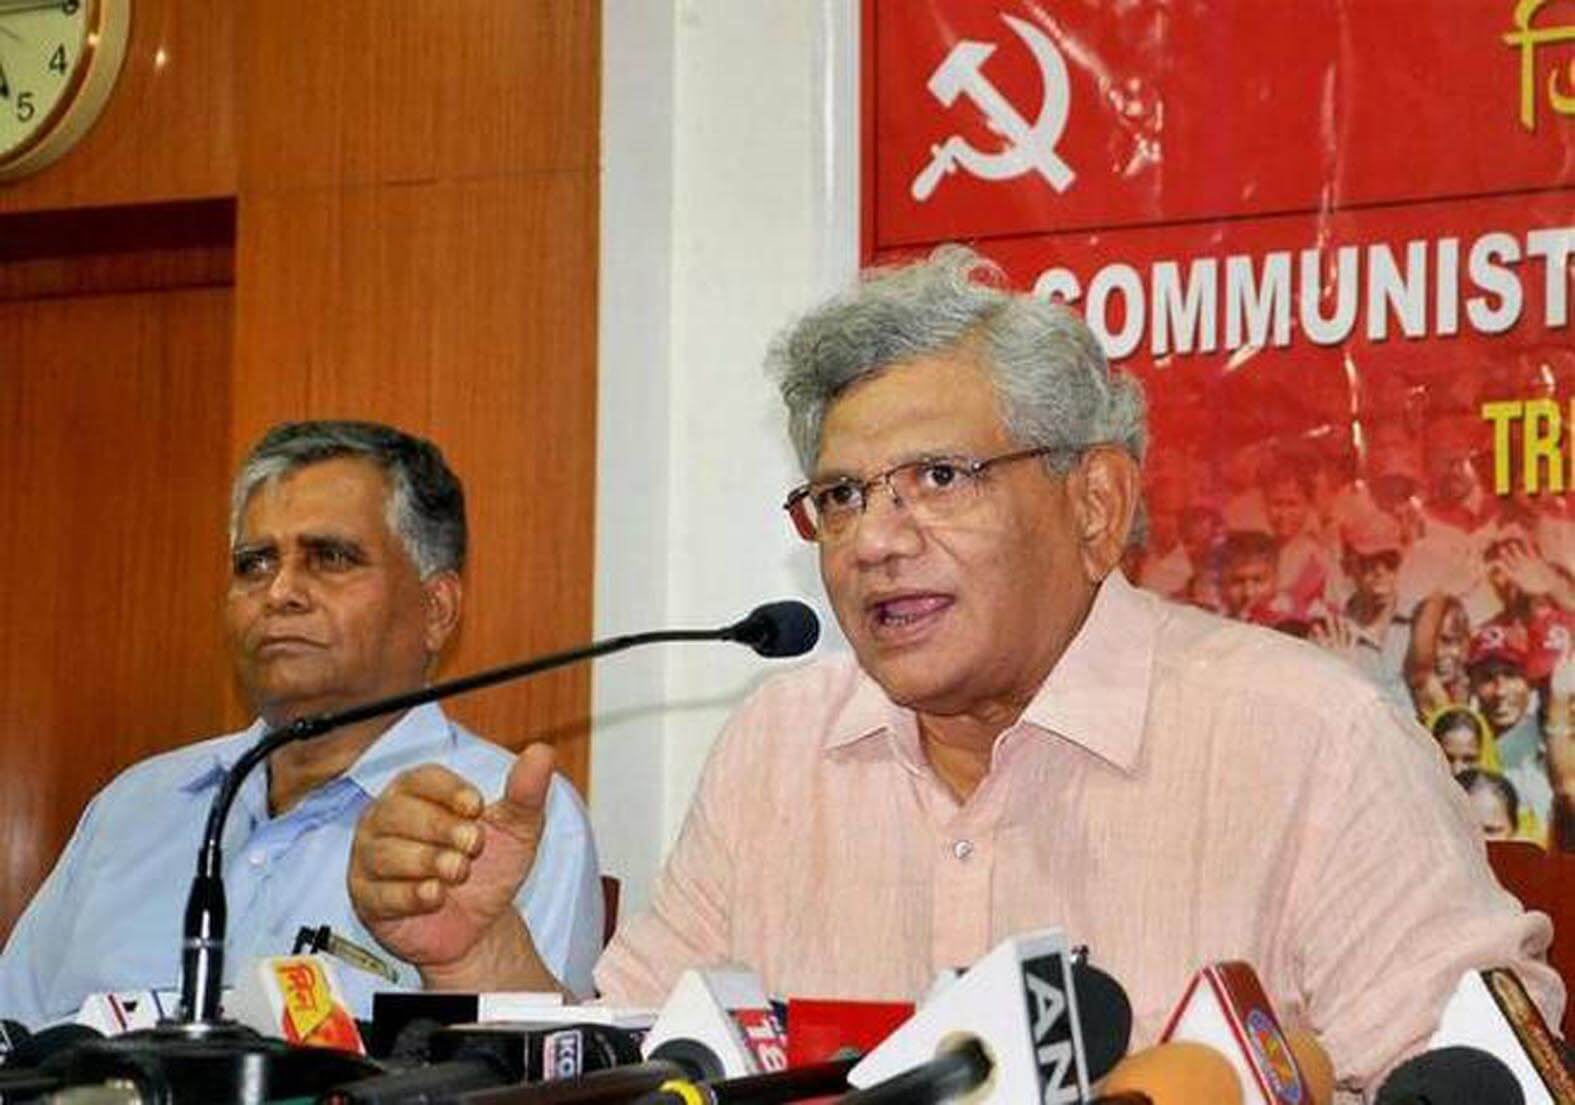 BJP seeks votes in Lord Ram's name, needs to be stopped: CPI-M leader Sitaram Yechury